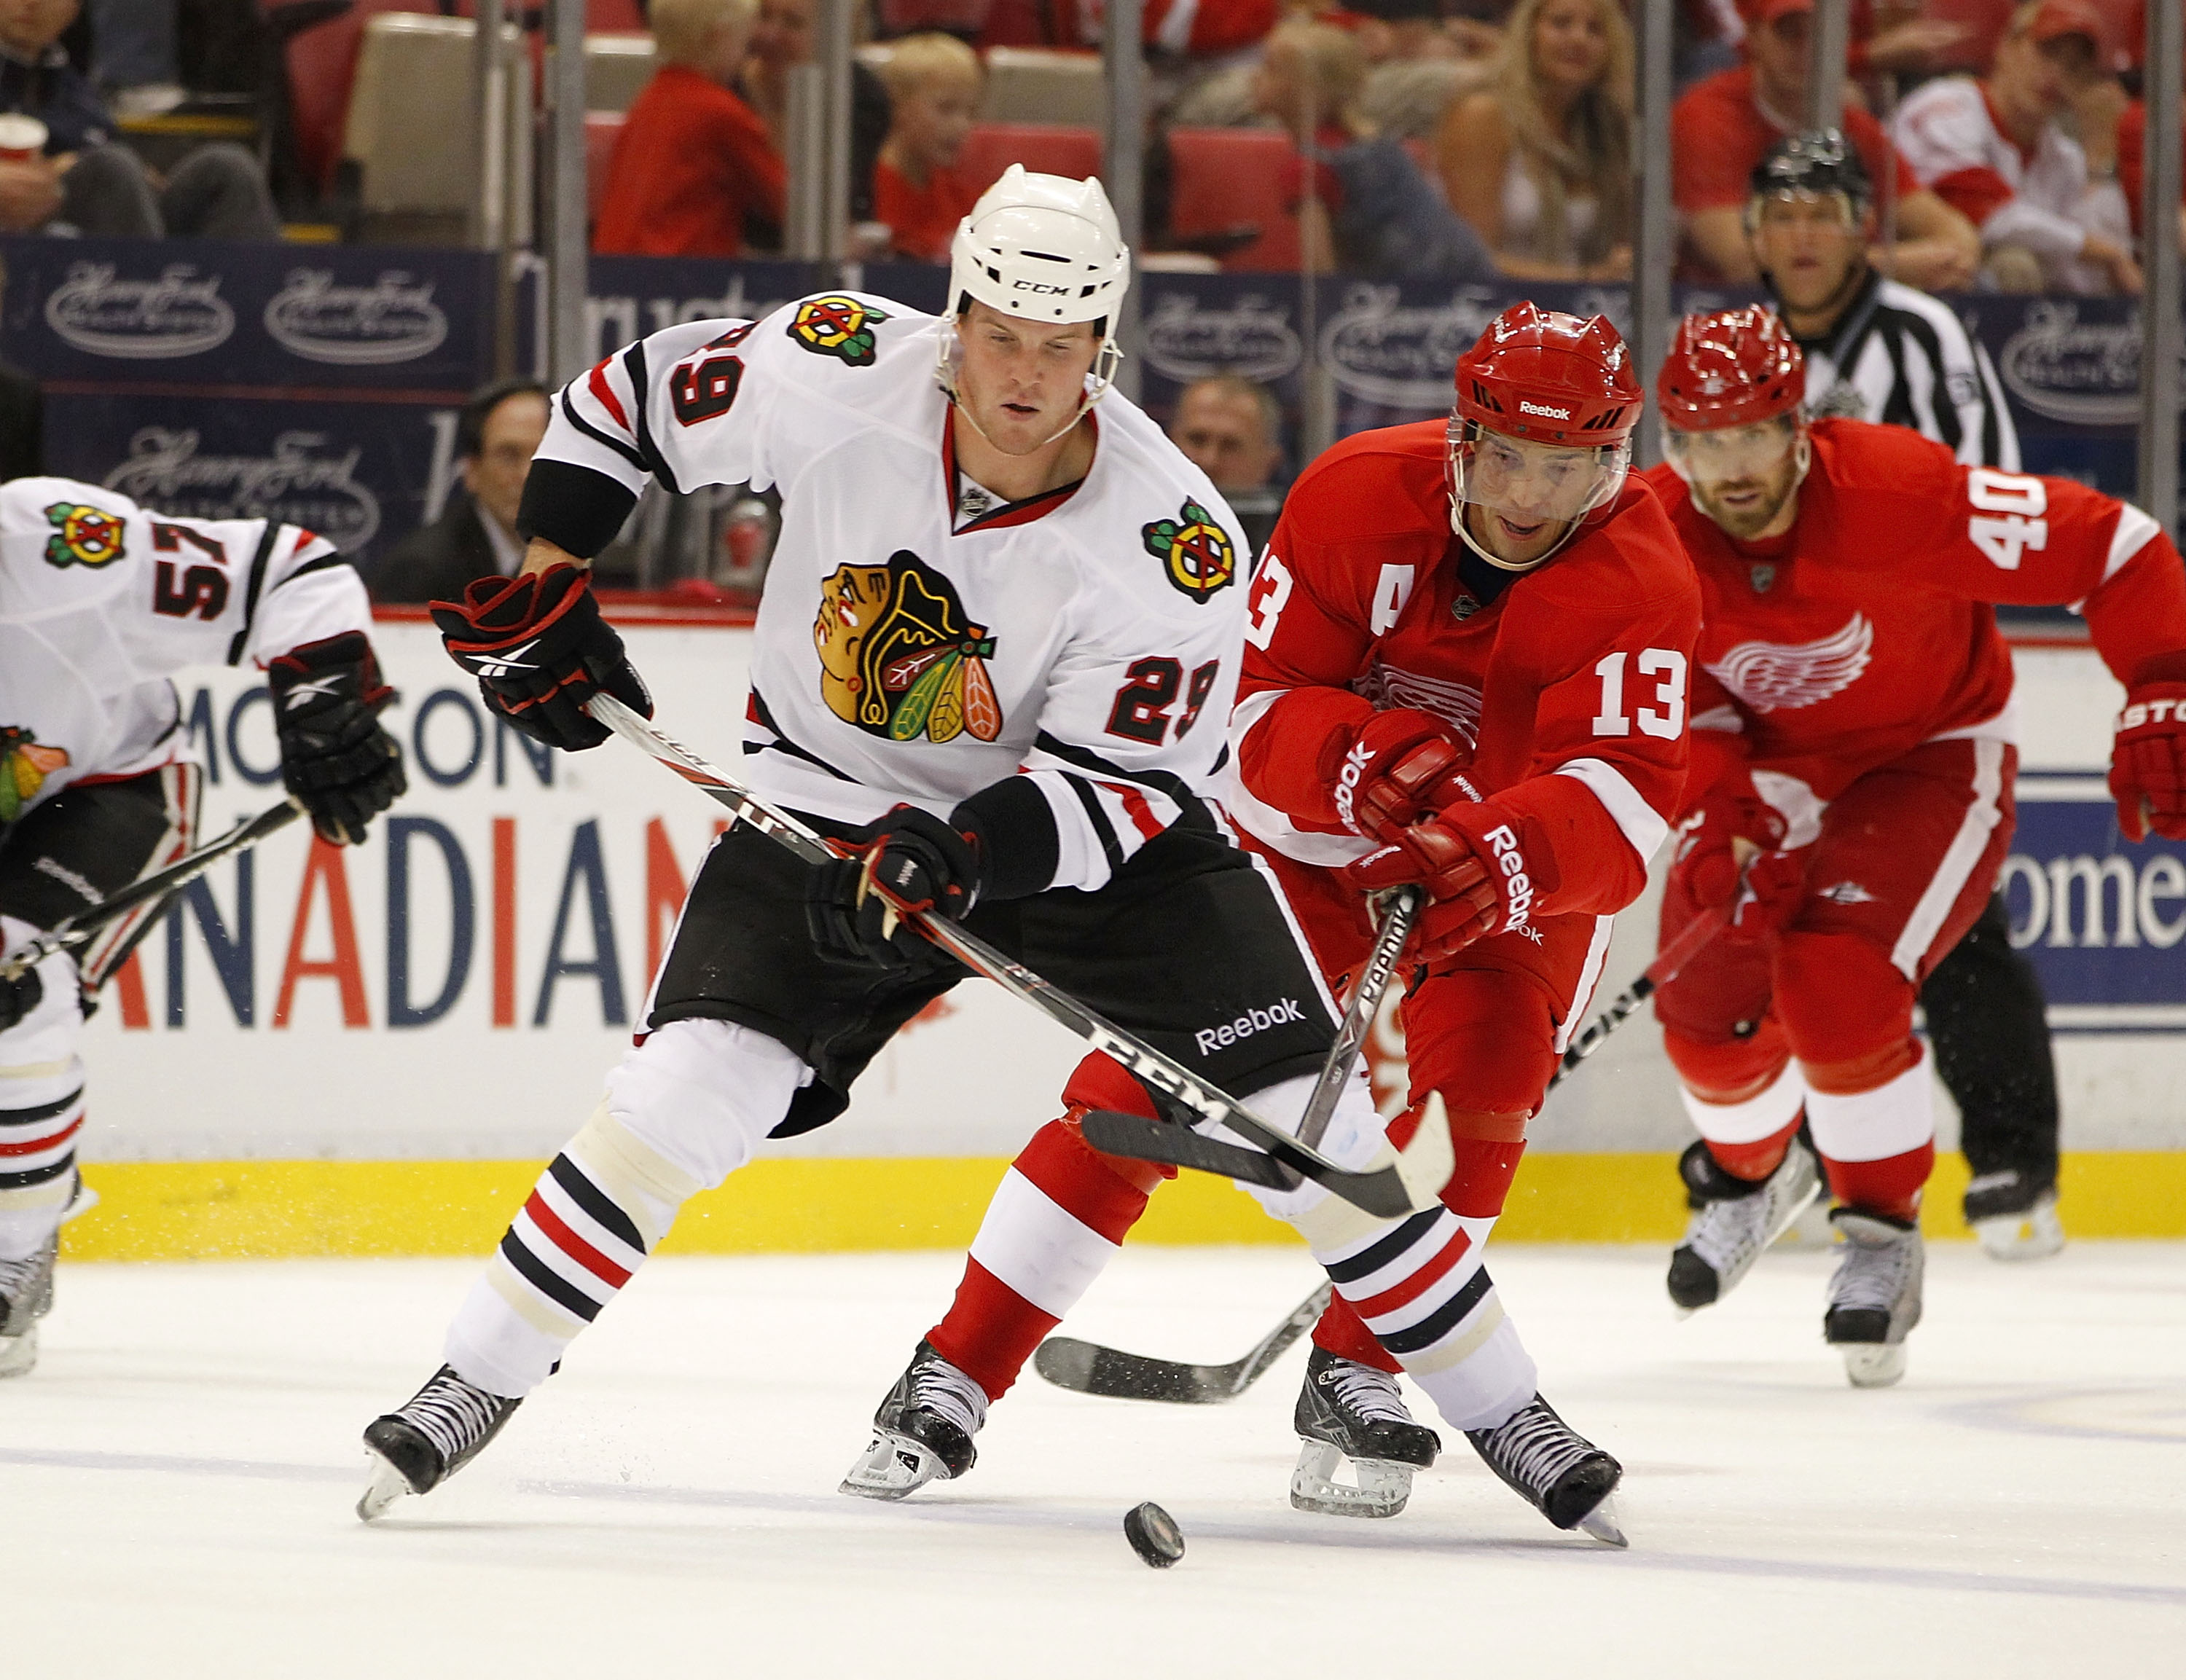 DETROIT - SEPTEMBER 24:  Bryan Bickell #29 of the Chicago Blackhawks tries to control the puck in front of Pavel Datsyuk #13 of the Detroit Red Wings during a pre season game on September 24, 2010 at Joe Louis Arena in Detroit, Michigan.  (Photo by Gregor